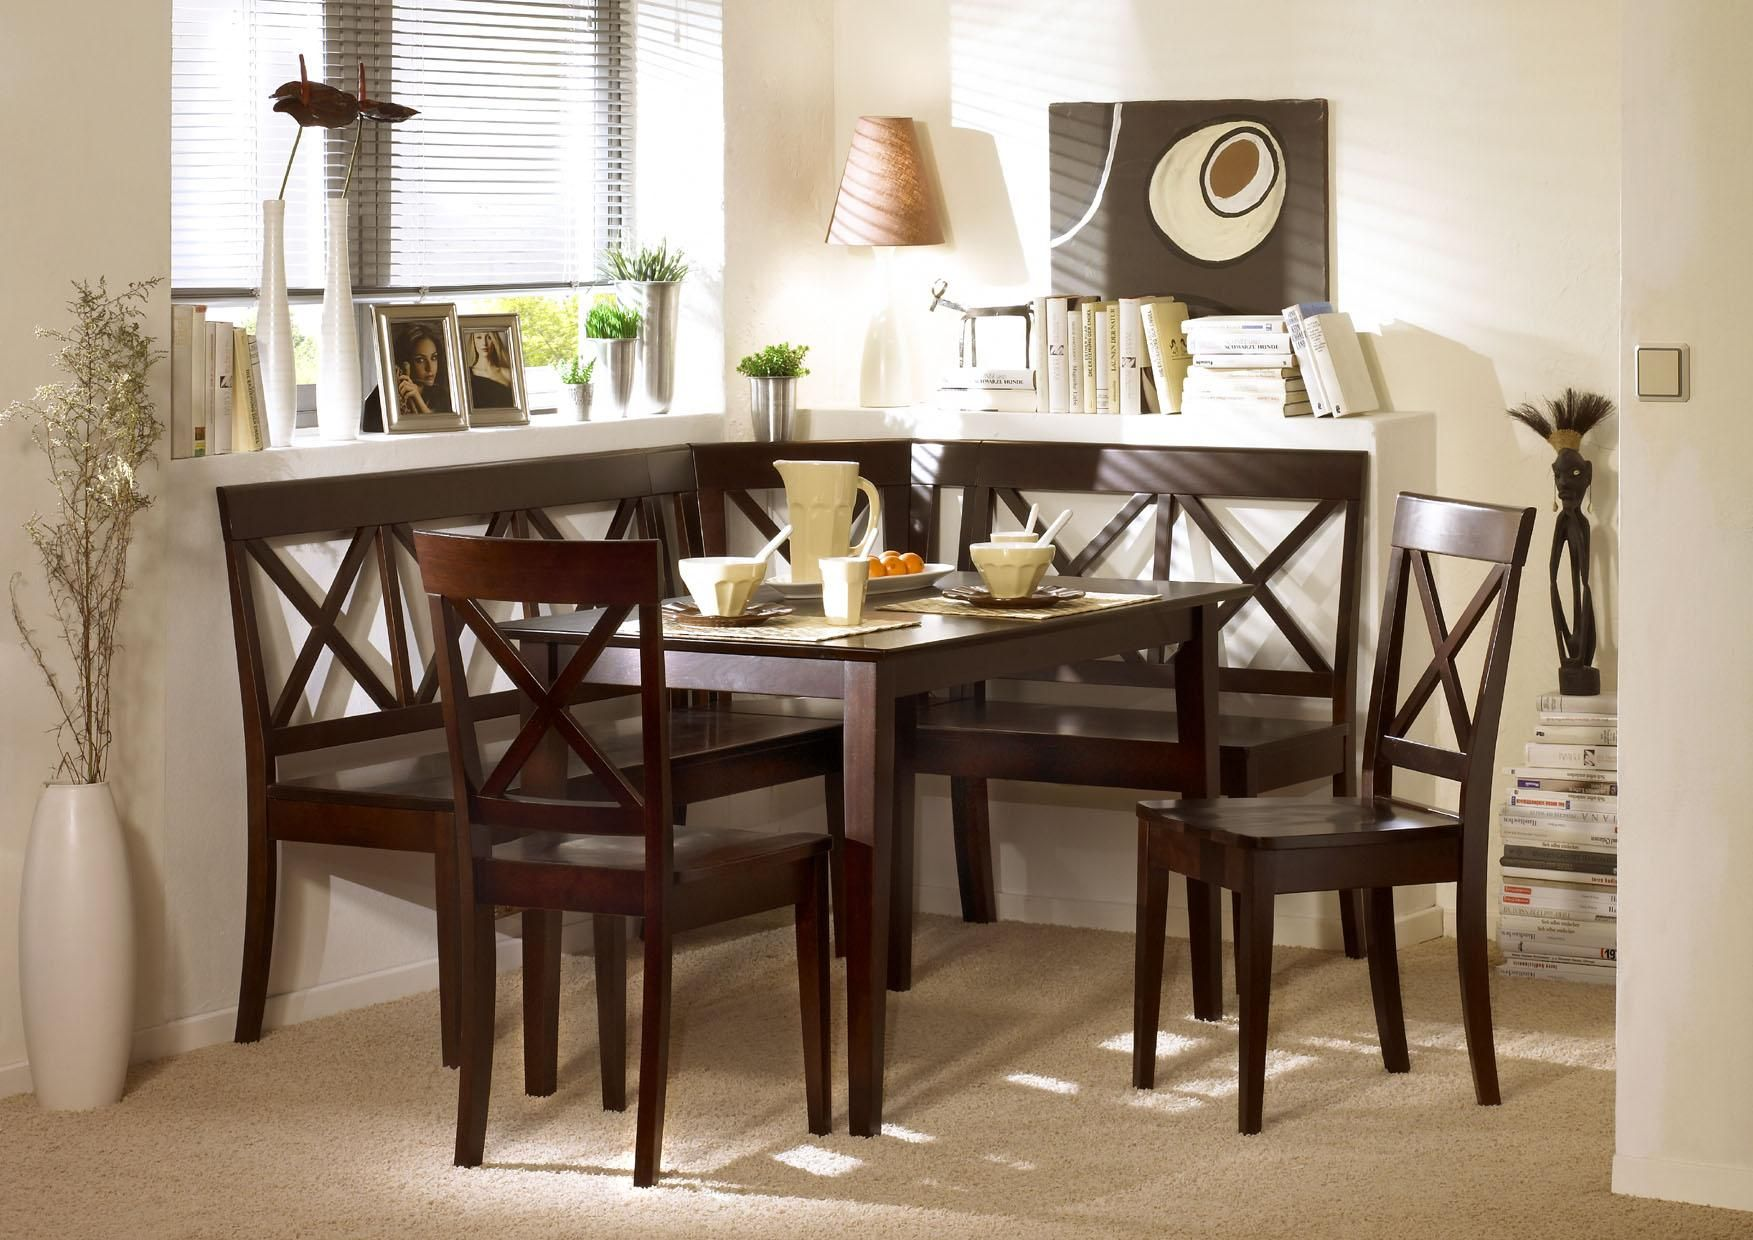 espresso corner bench dining set booth table chairs kitchen